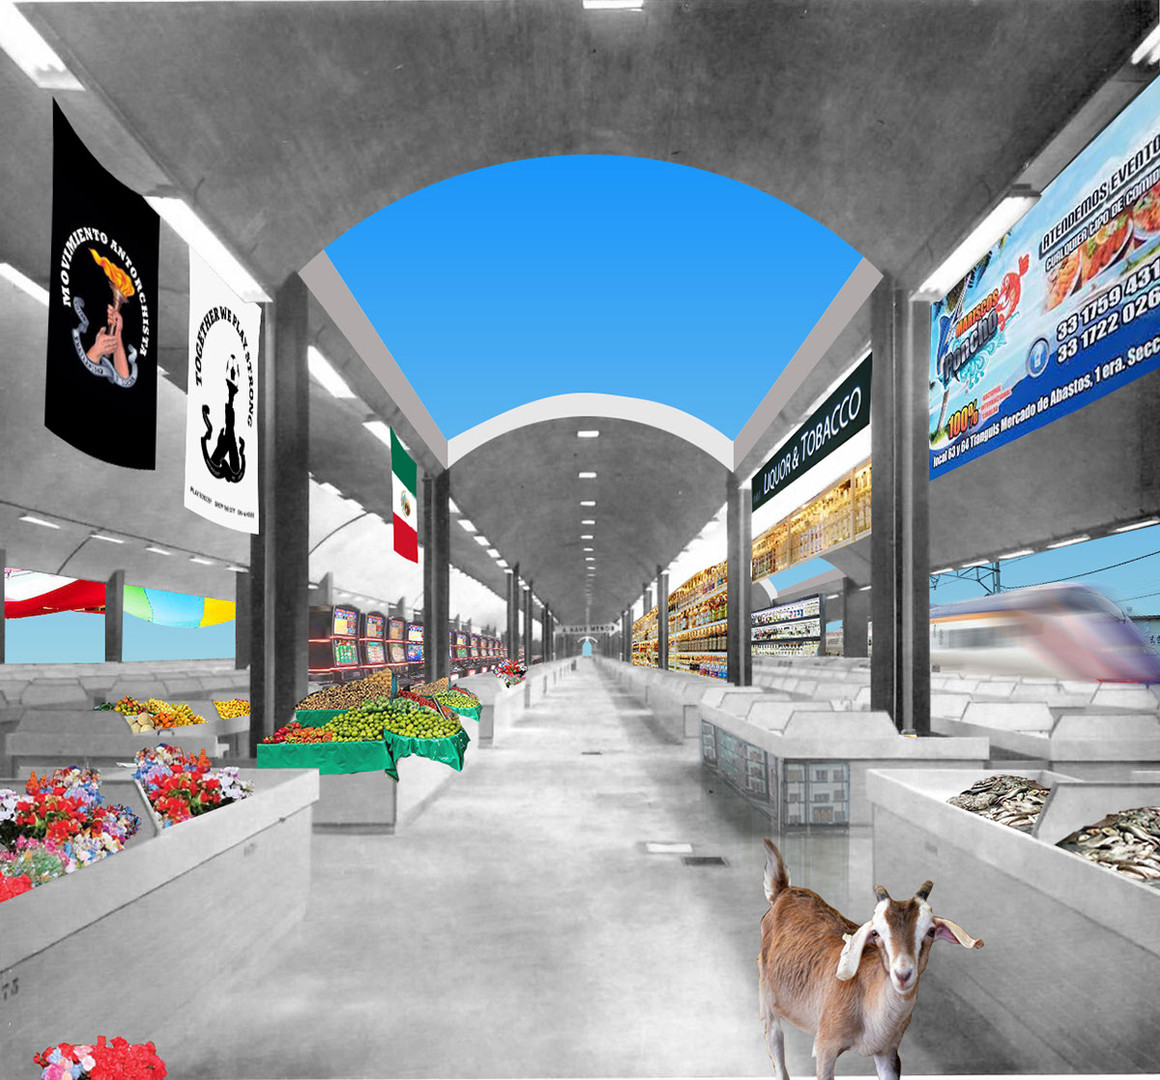 19_04_11-MercadoCollage.jpg